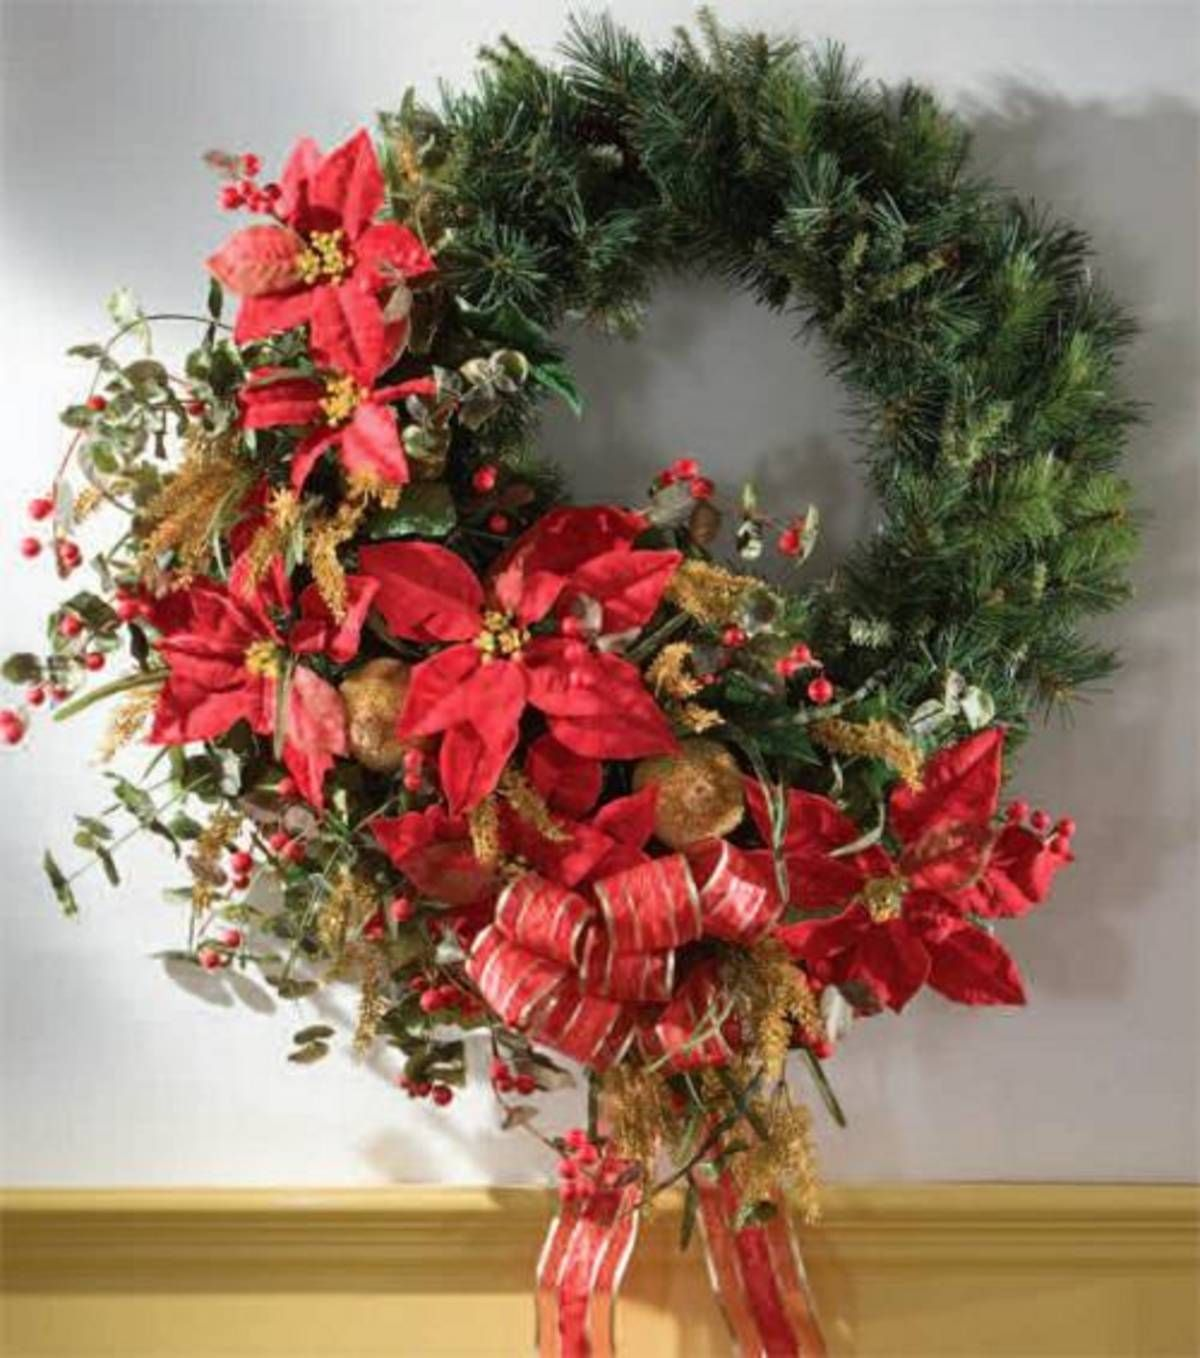 Elegant Christmas Wreath | Xmas decor ideas | Pinterest | Elegant ...